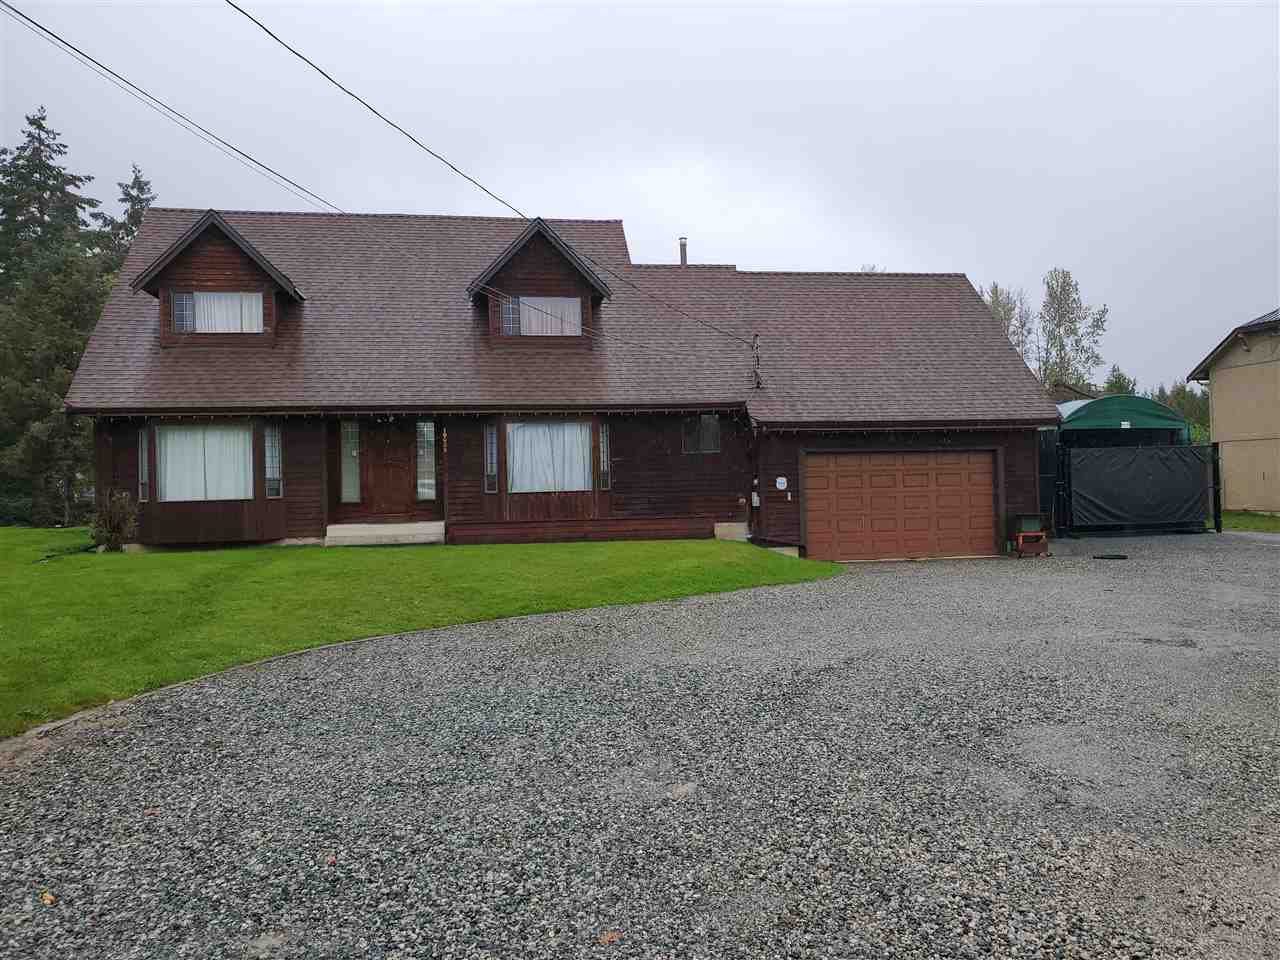 """Main Photo: 19909 73A Avenue in Langley: Willoughby Heights House for sale in """"Willoughby - Latimer"""" : MLS®# R2513173"""